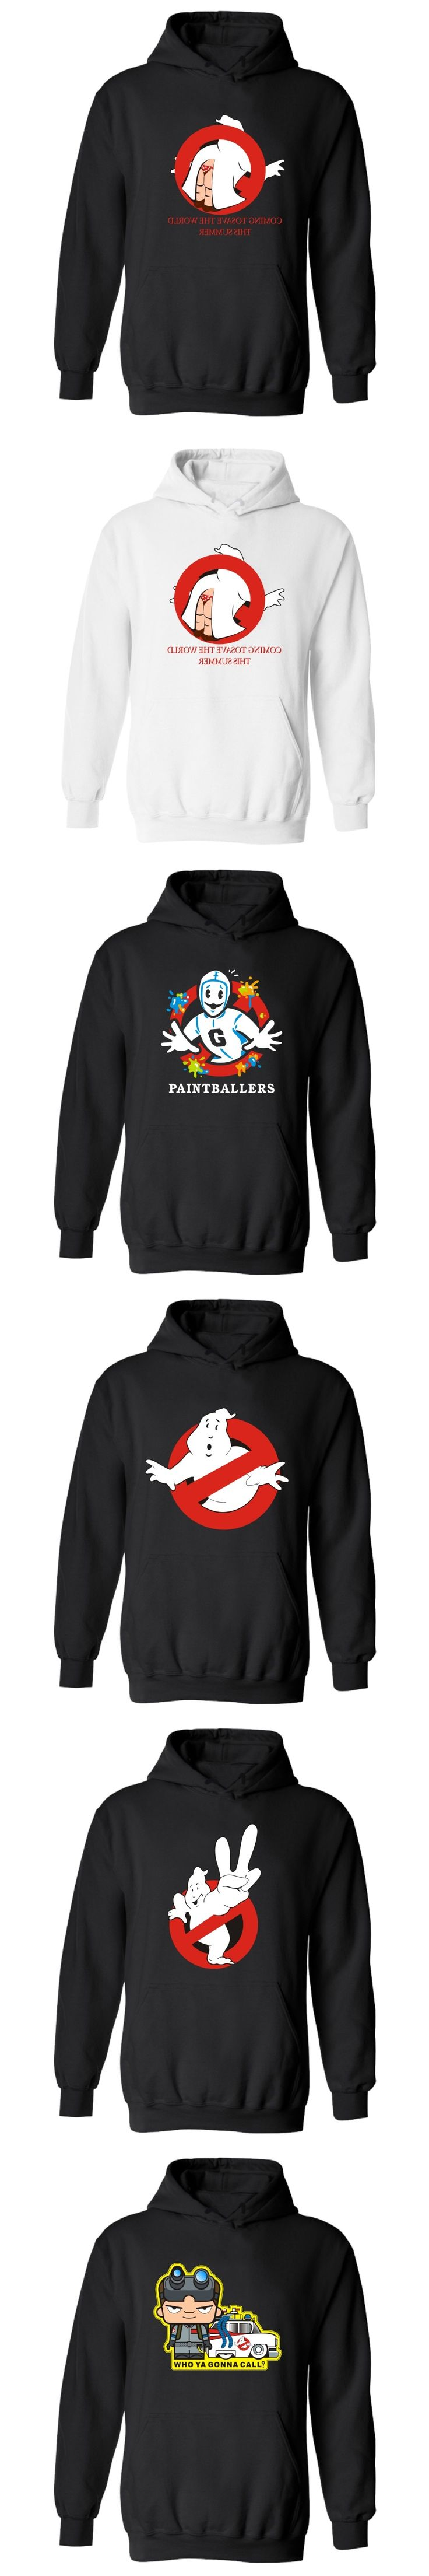 Ghostbusters Hooded Winter Hoodies Men Casual Fashion Black Sweatshirt Men Hip Hop Casual Funny RPG Game Plus Size 4XL Clothes